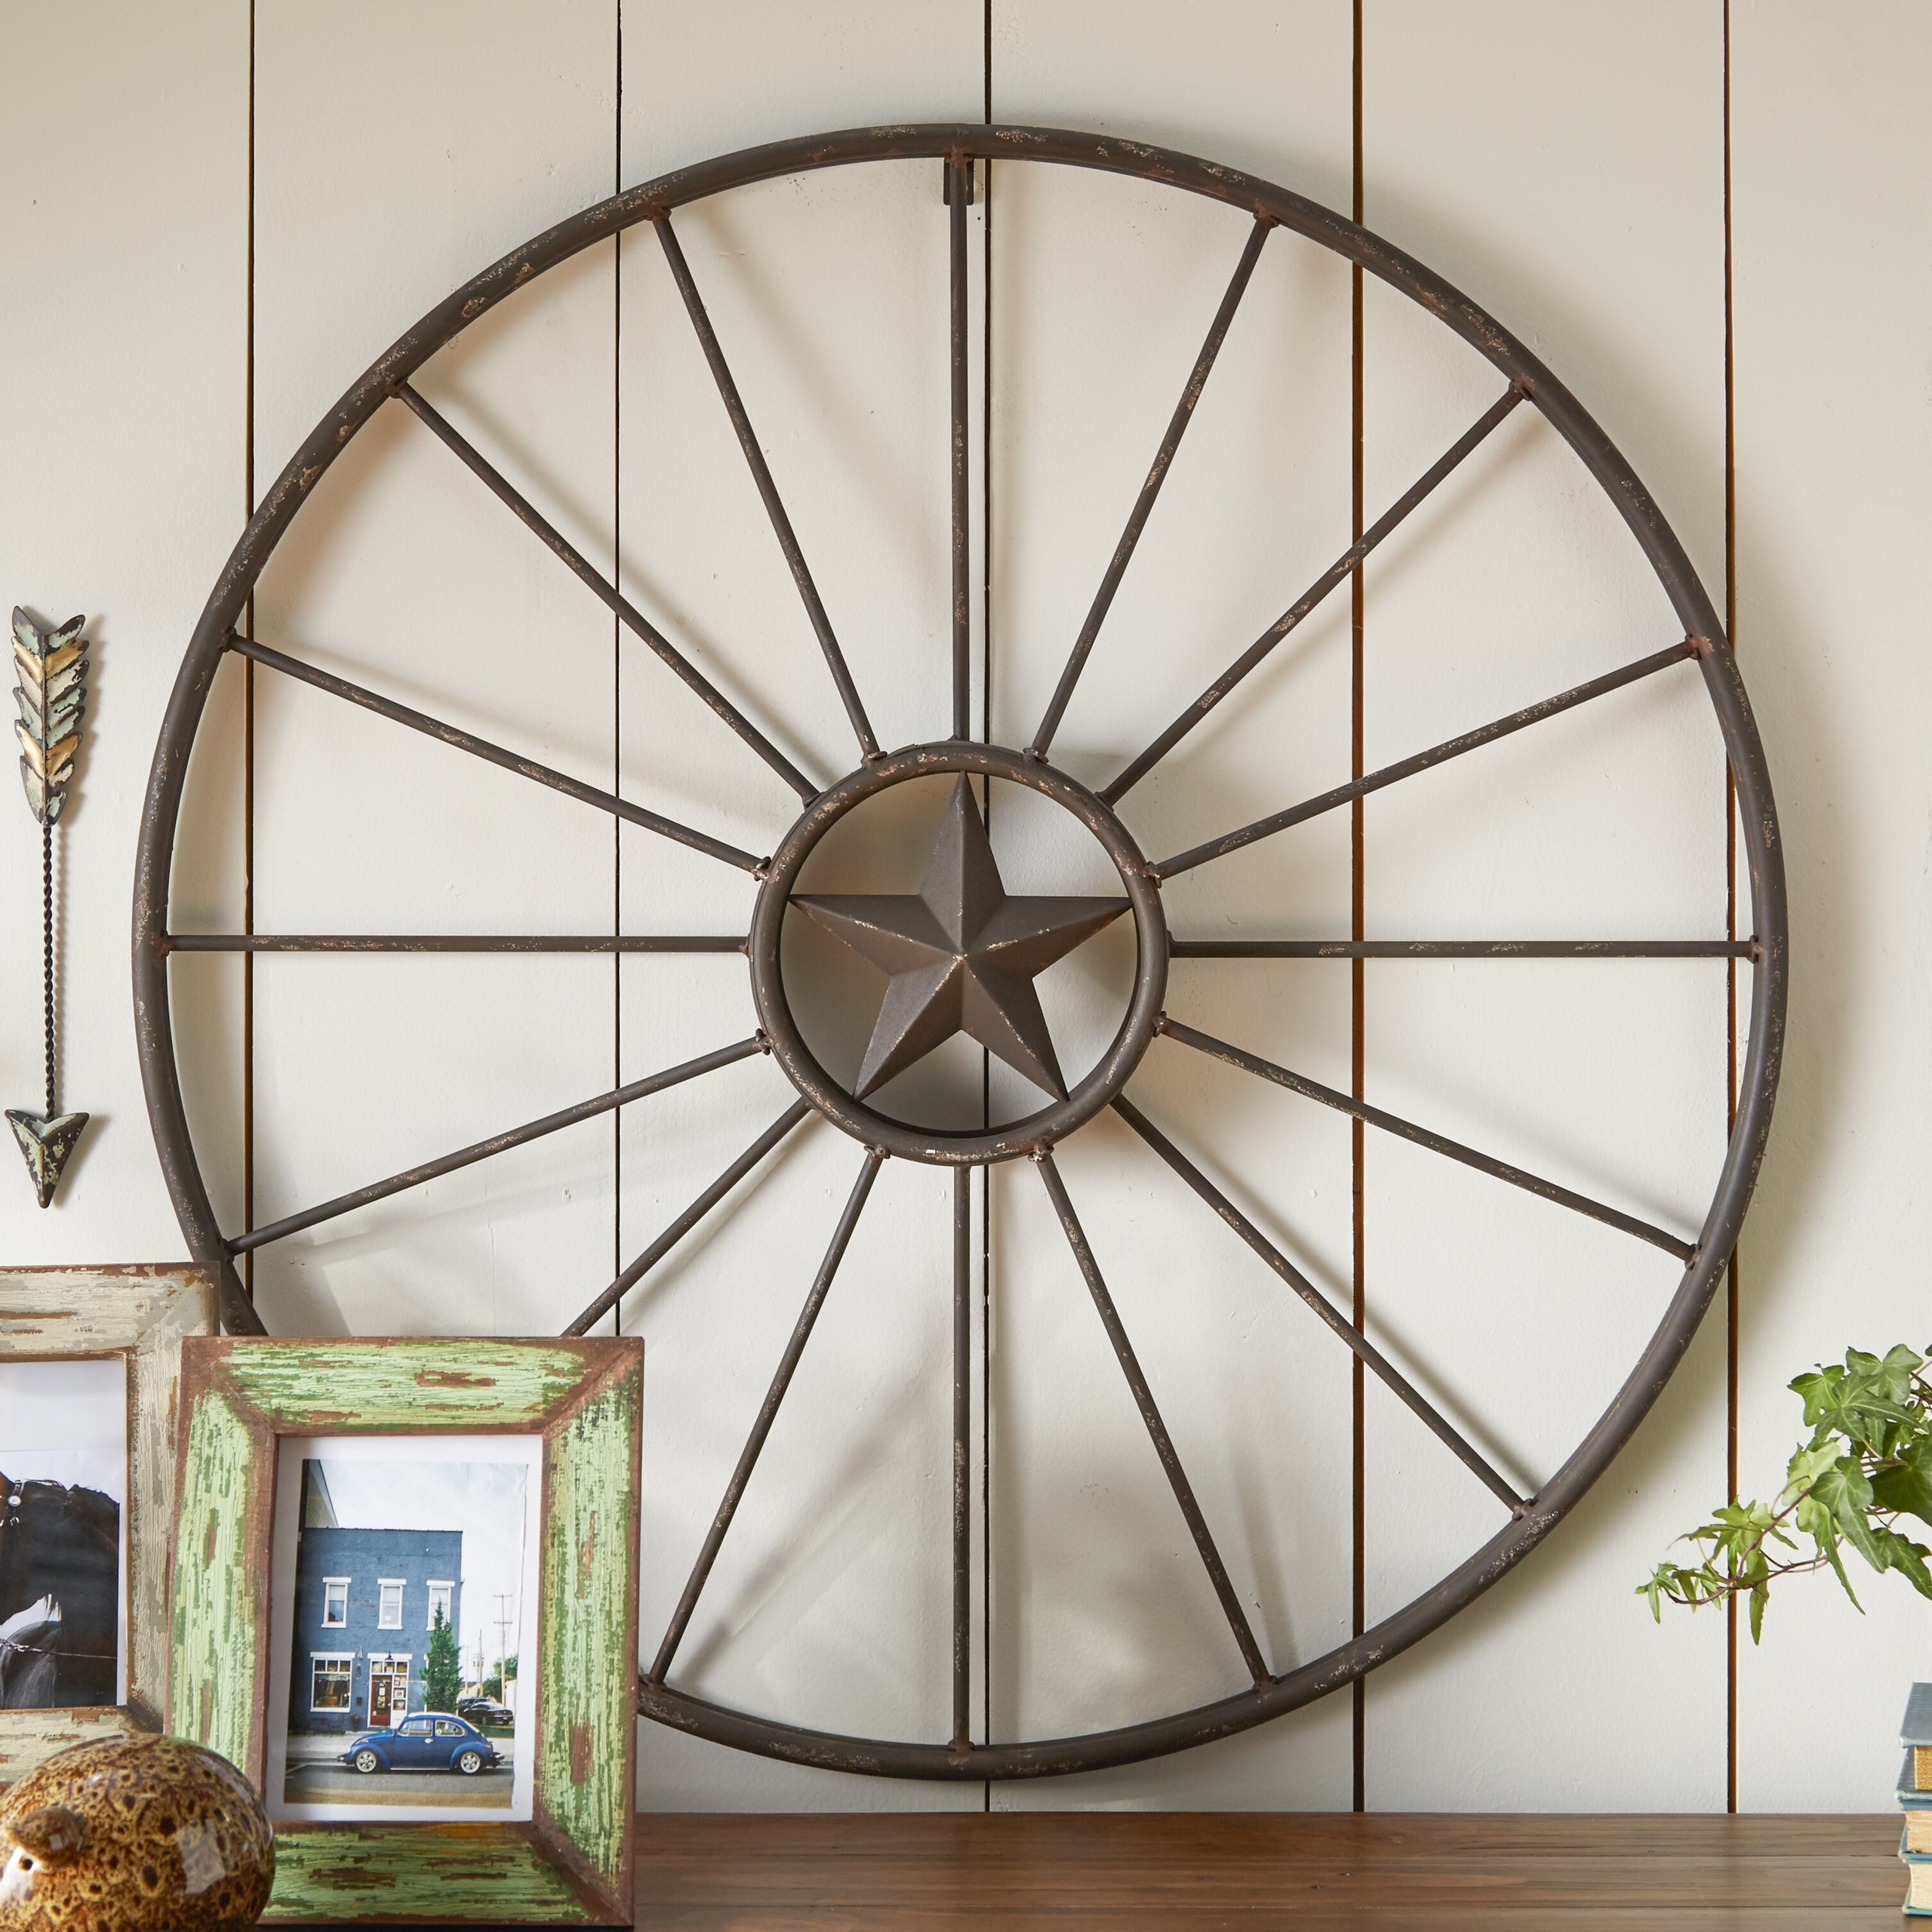 Wagon Wheel Wall Decor You Ll Love In 2021 Visualhunt